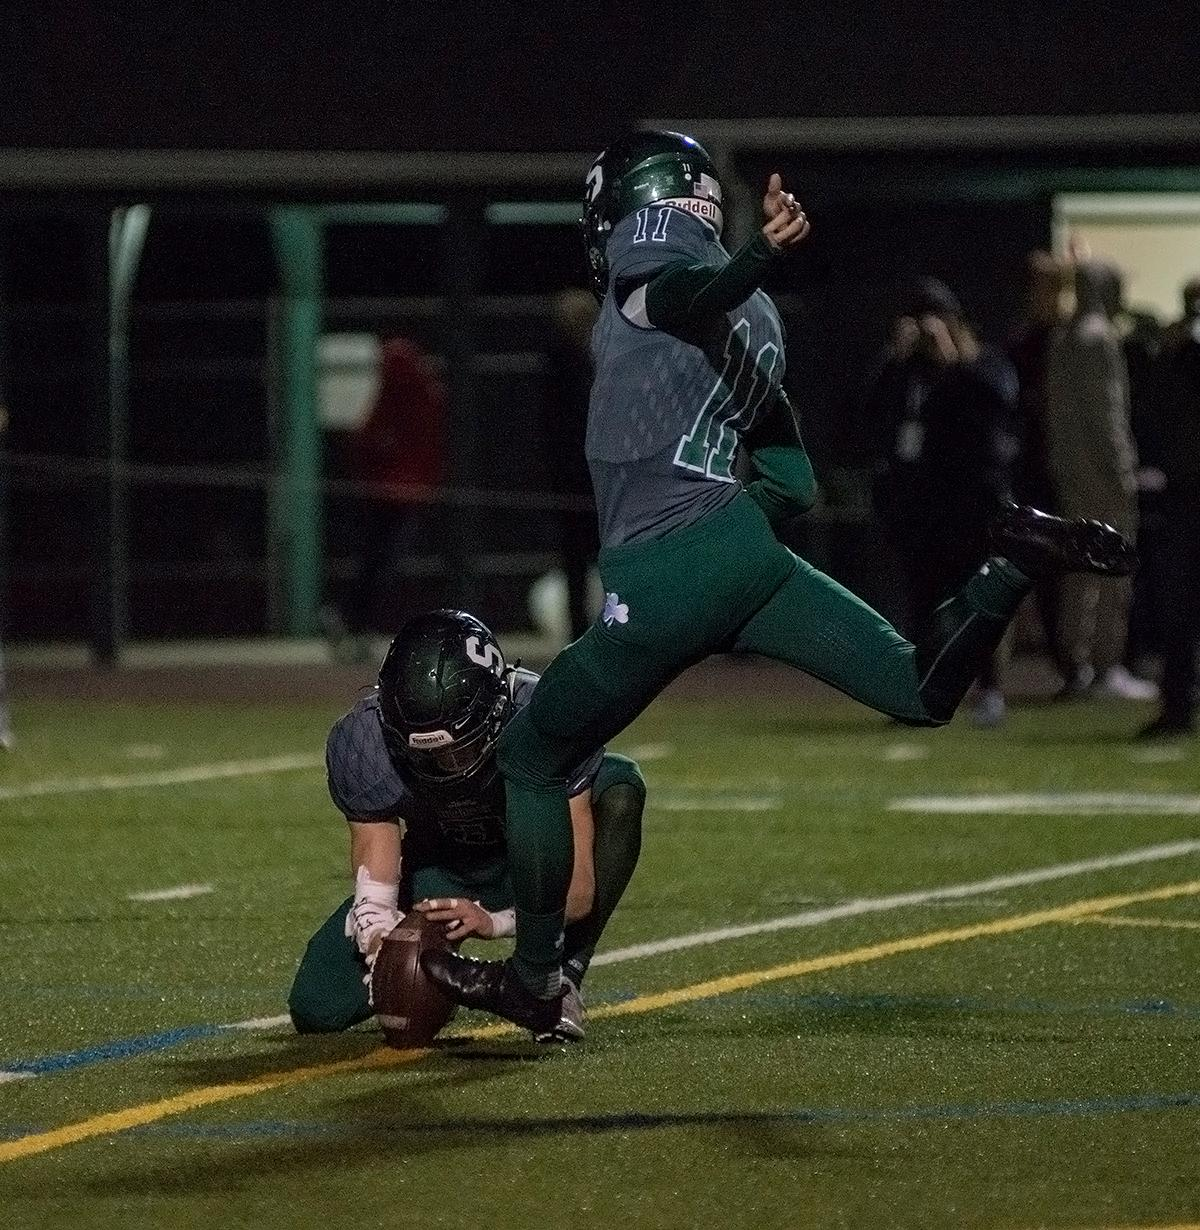 Sheldon Irish kicker Campbell Sheidow (#11) winds up for the extra point after an Irish touchdown. The Sheldon Irish defeated the Beaverton Beavers 48-7 on Friday night at Sheldon in the first round of 6A state playoffs. Photo by Abigail Winn, Oregon News Lab